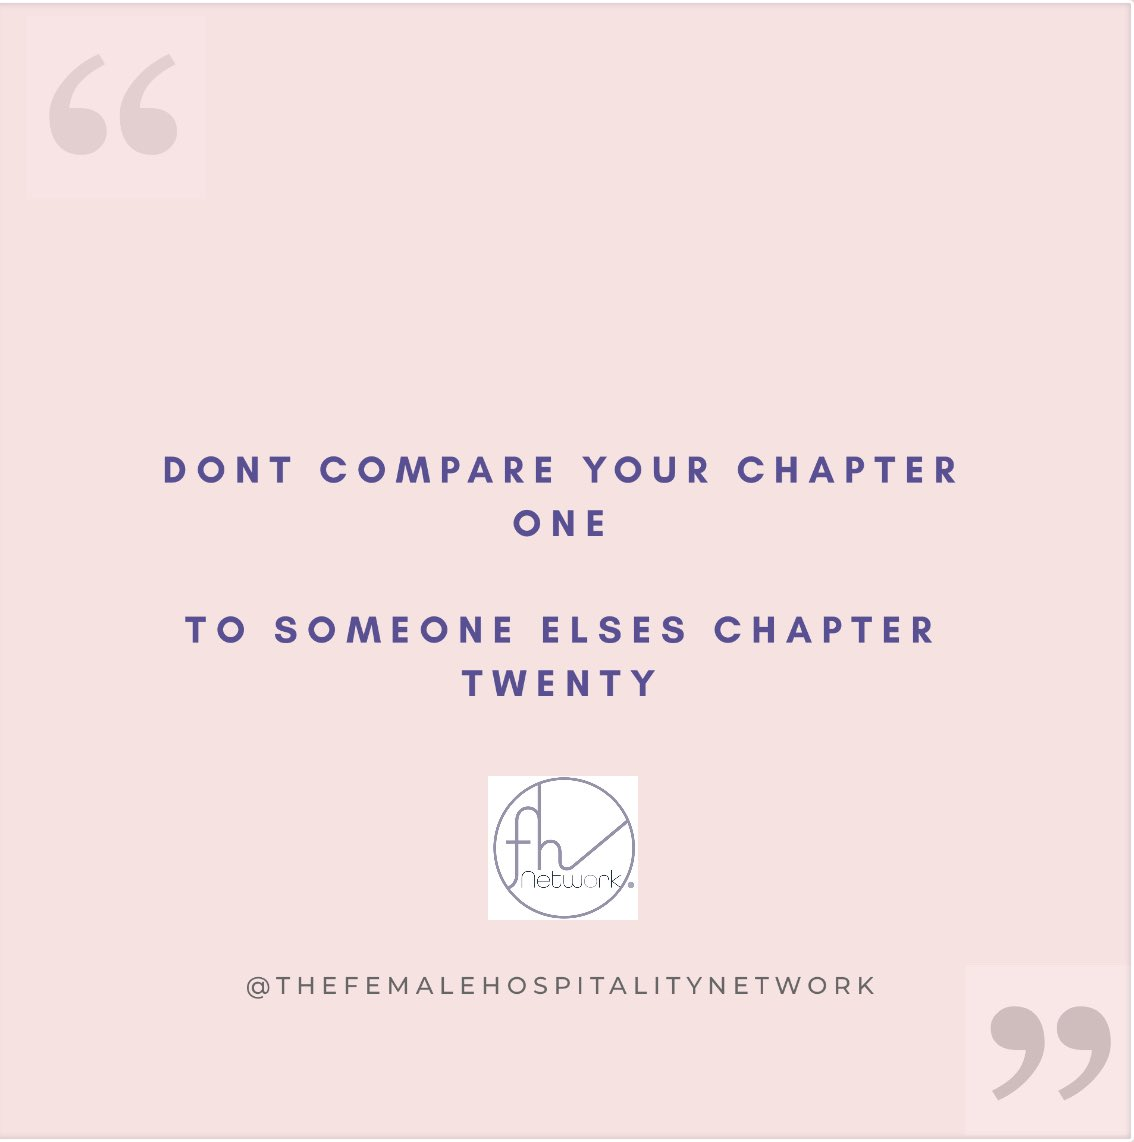 Dont compare your chapter one to someone elses chapter twenty #everyonematters #weallstartsomewhere #beoriginal pic.twitter.com/icYOm4aPoy